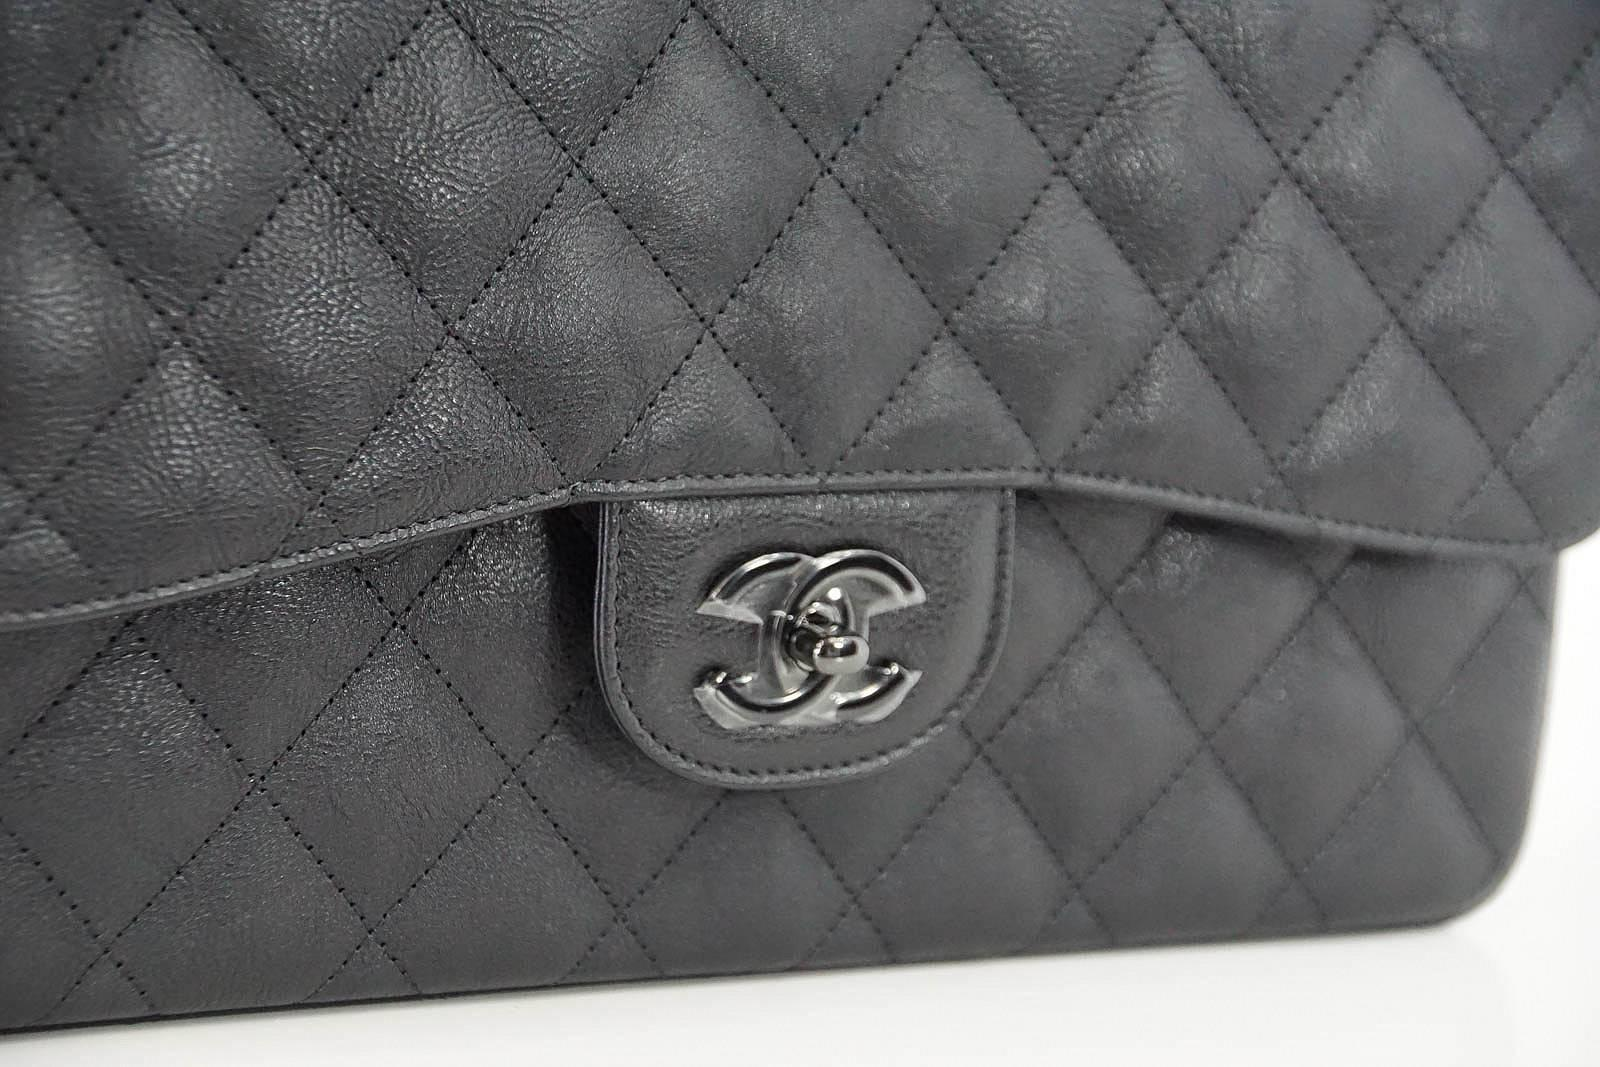 27d37da49859 CHANEL Bag Quilted So Black Jumbo Classic Double Flap Calfskin Limited  Edition at 1stdibs